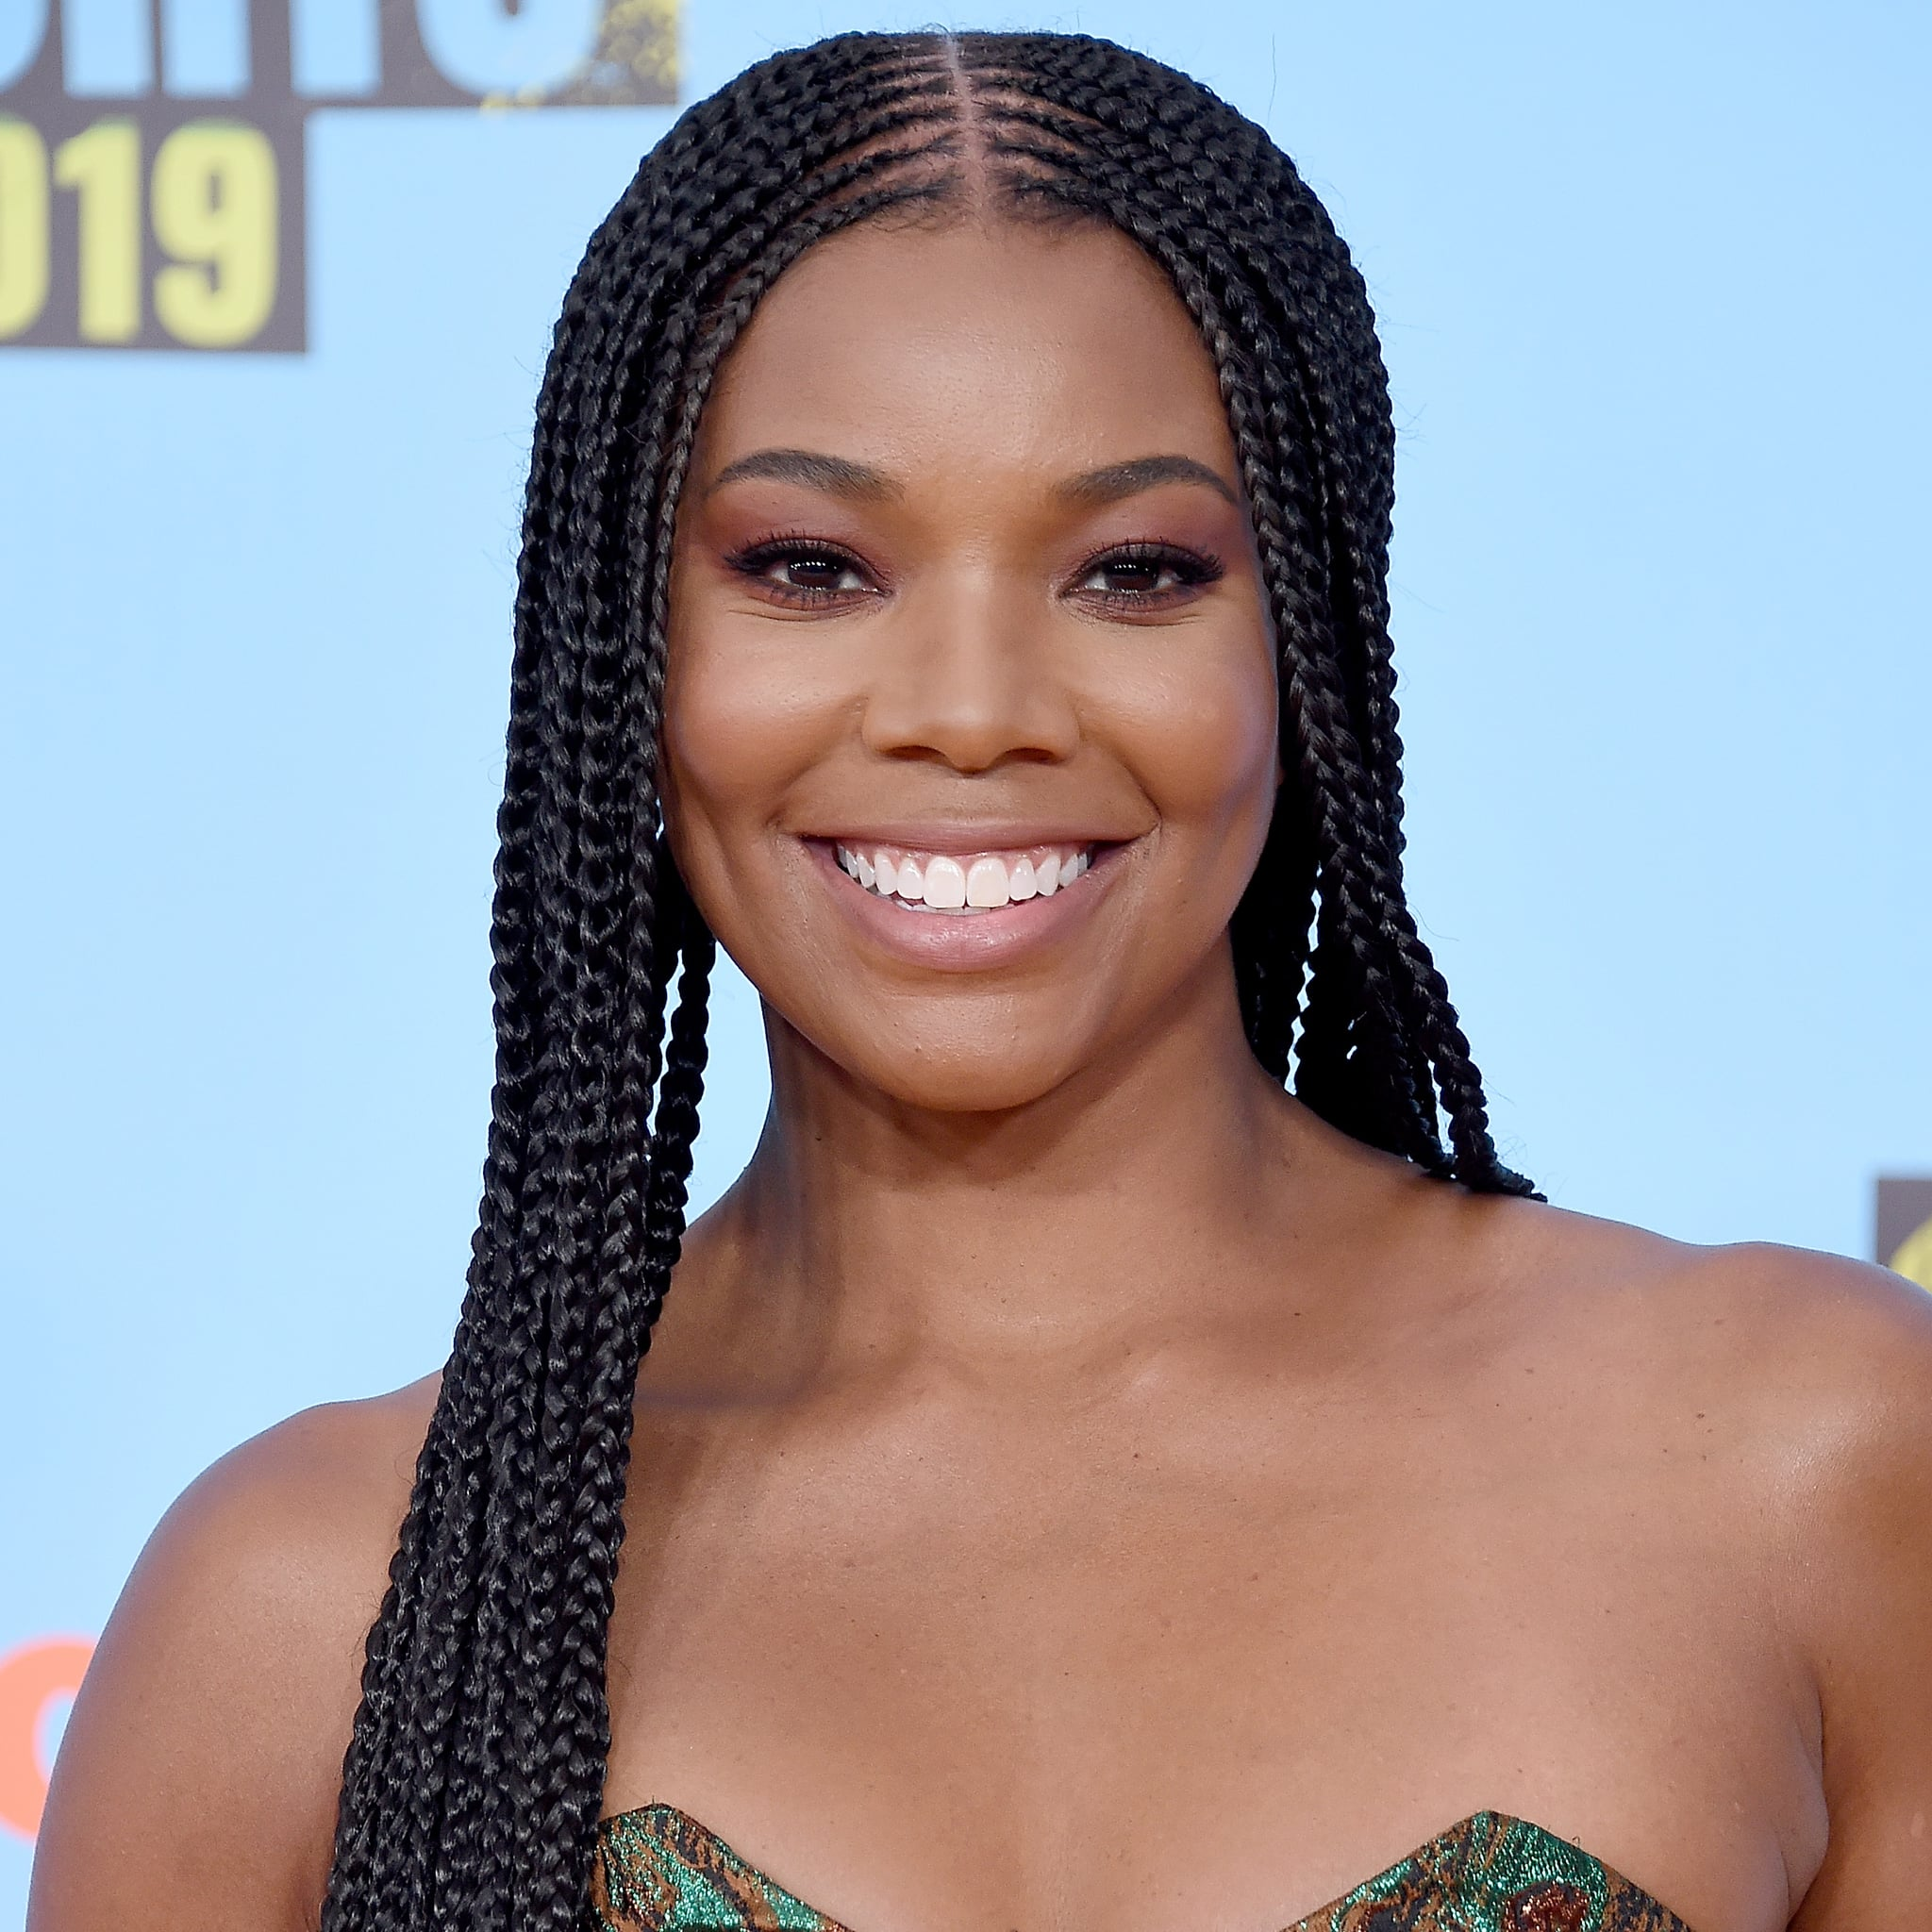 gabrielle-union-flaunts-her-happiness-on-social-media-check-out-her-pics-here